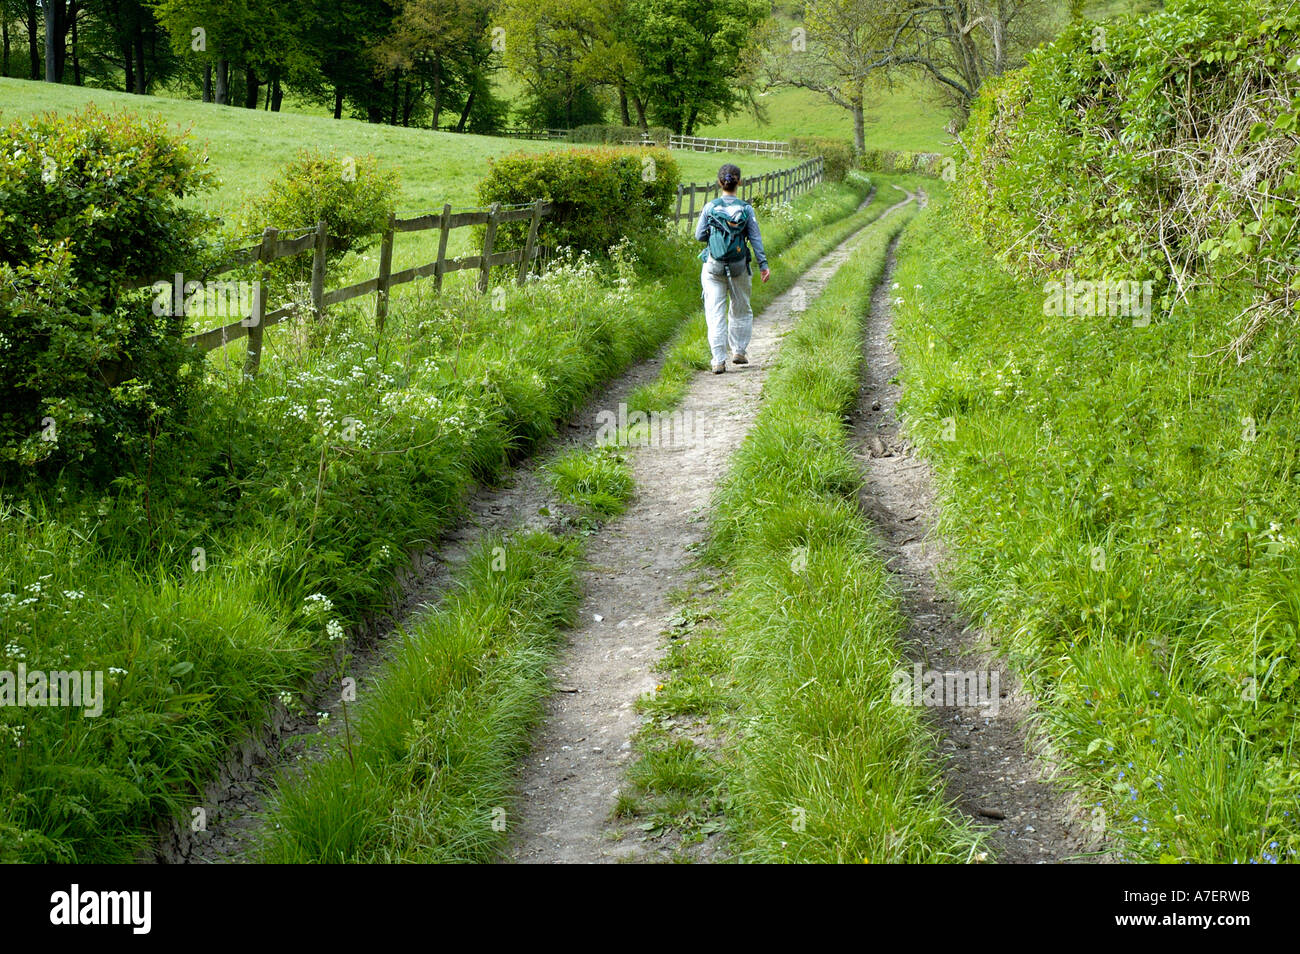 Walker on bridleway Russell's Water Chilterns England - Stock Image